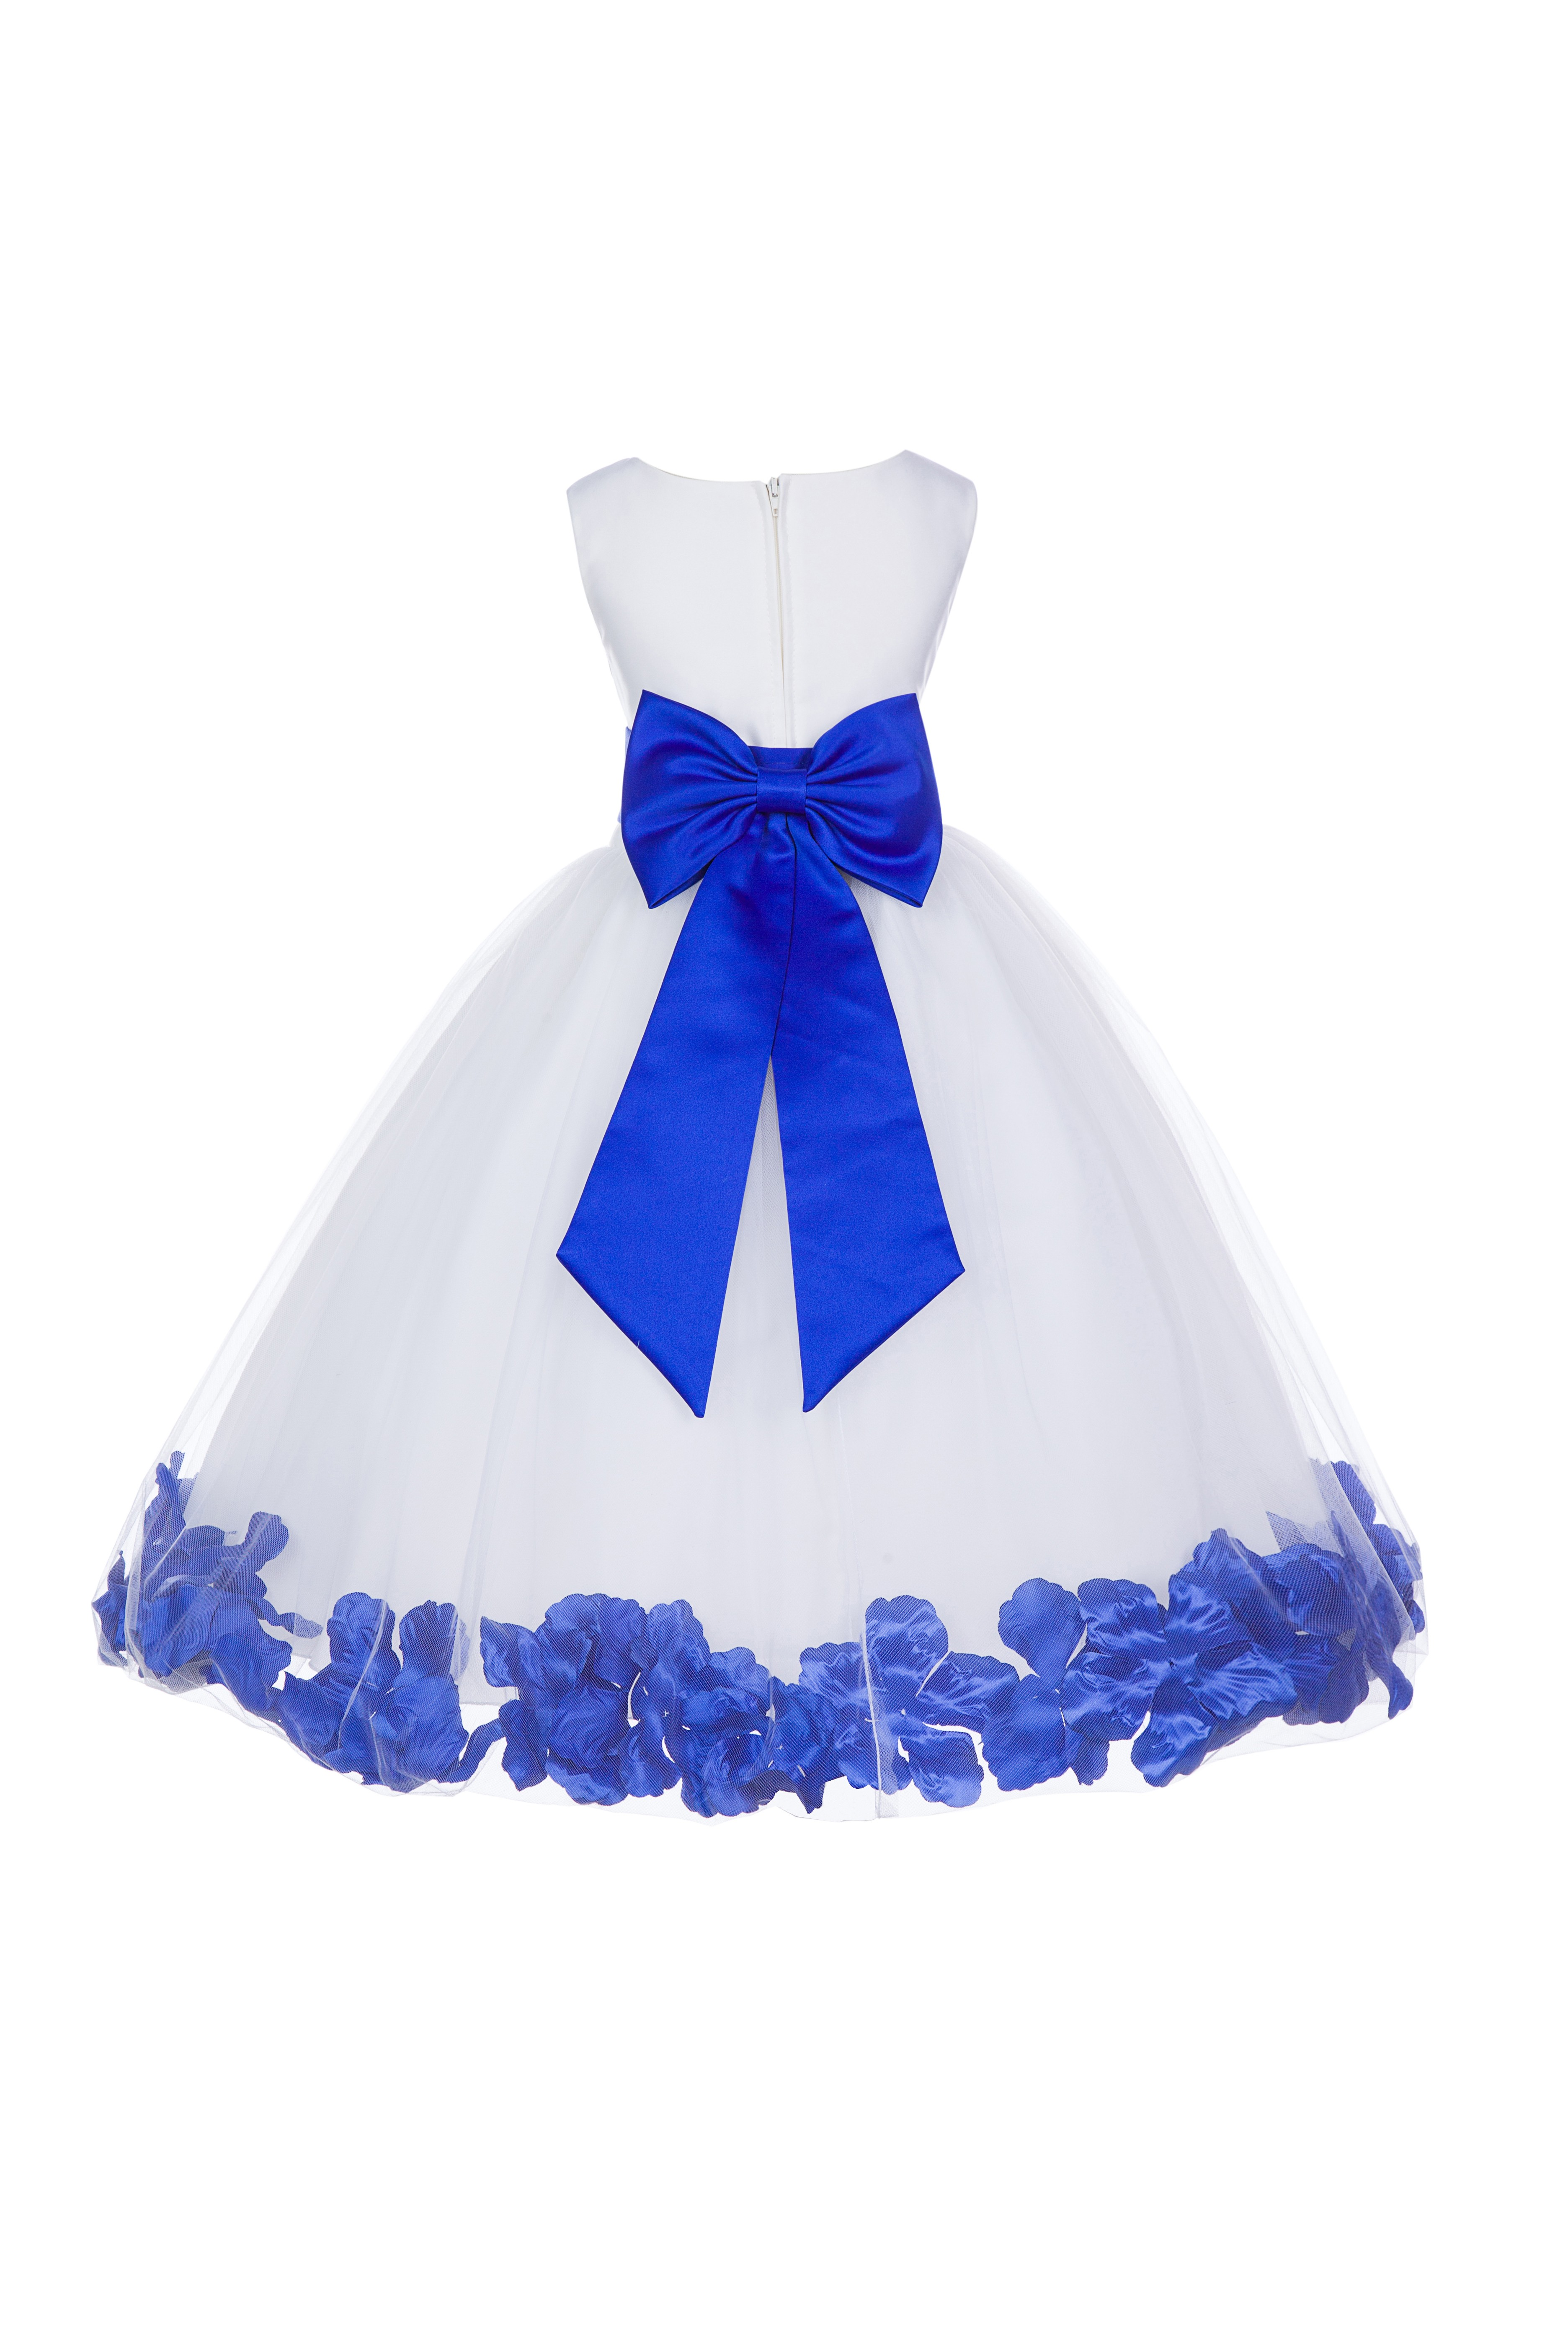 d1b93119acd White Horizon Tulle Rose Petals Flower Girl Dress Wedding 302T - T ...